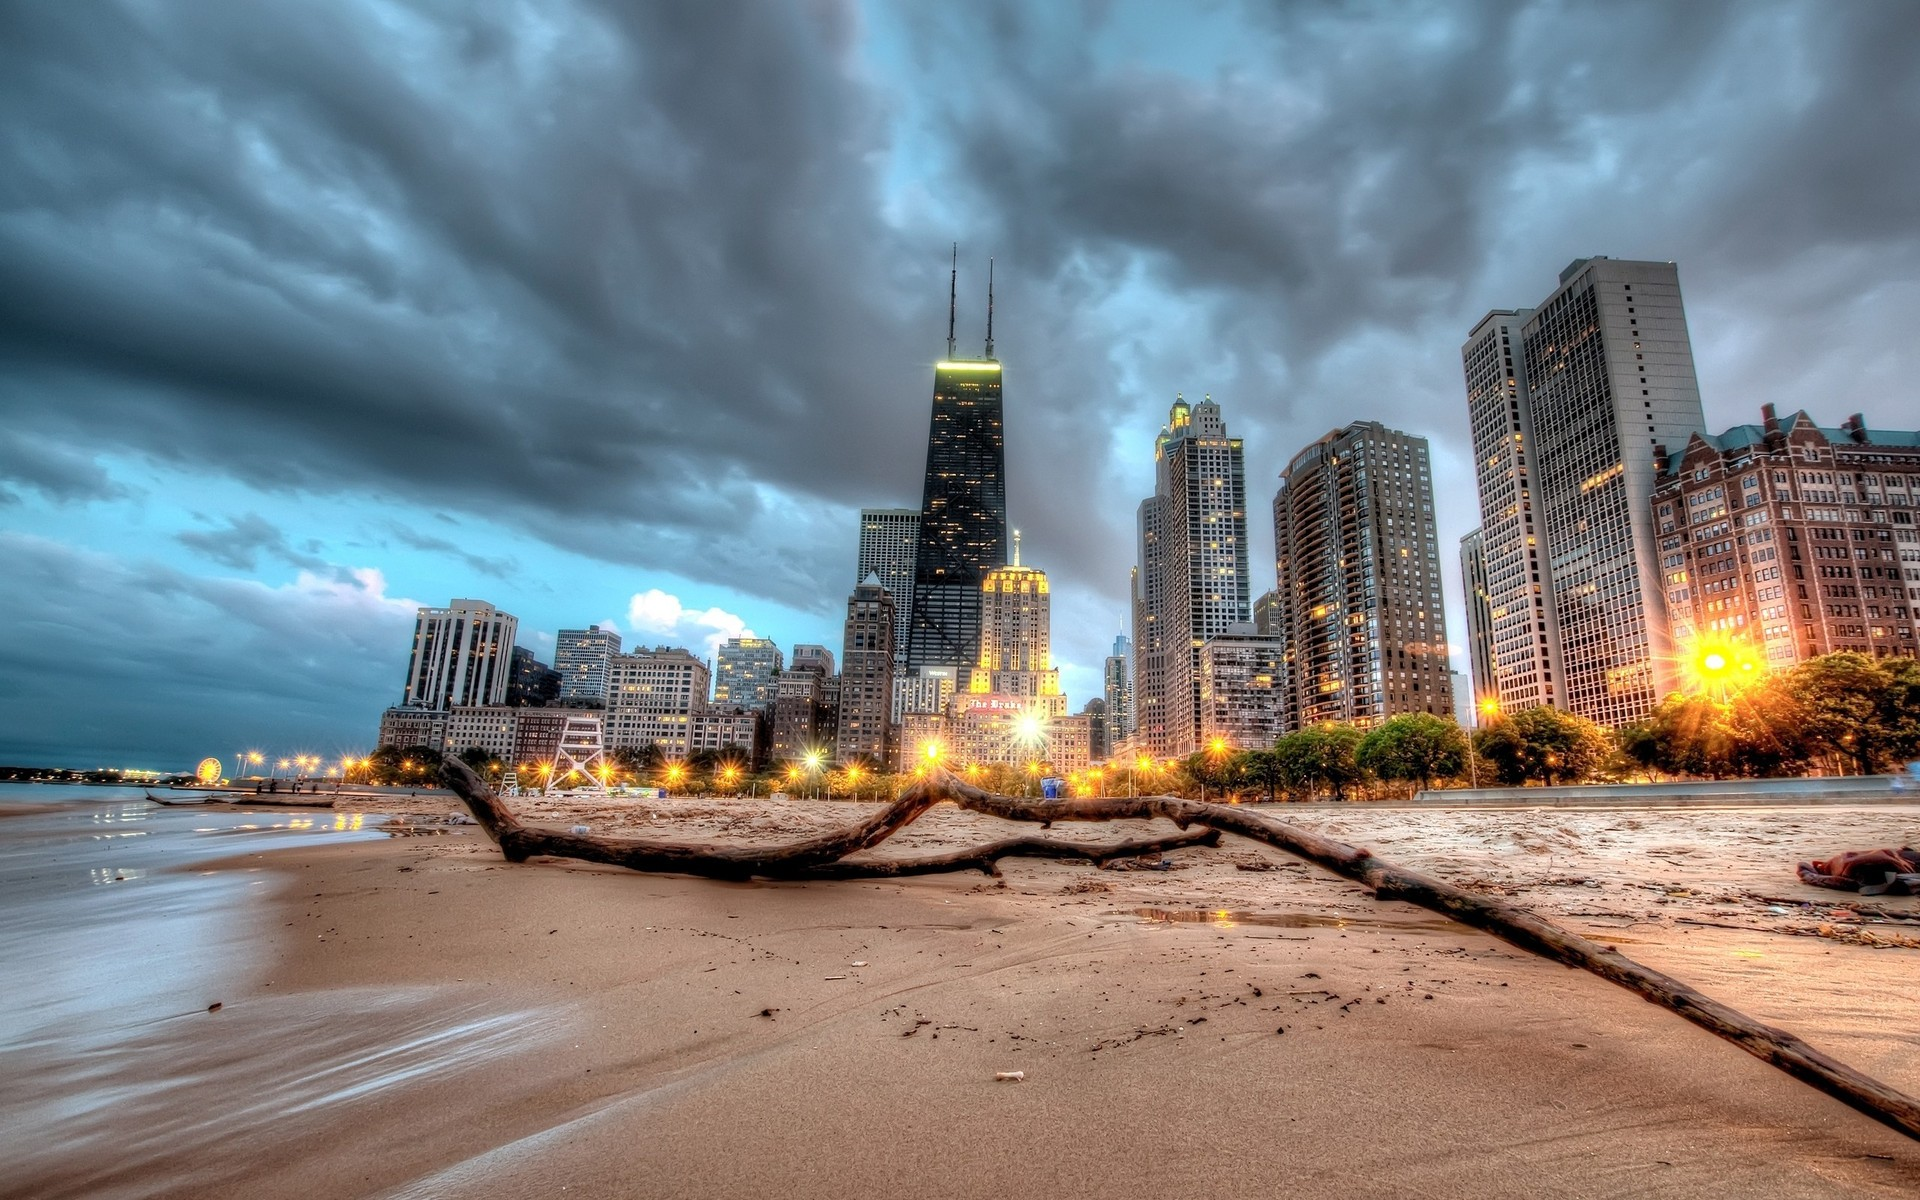 City Of Chicago Full HD Wallpaper And Background Image